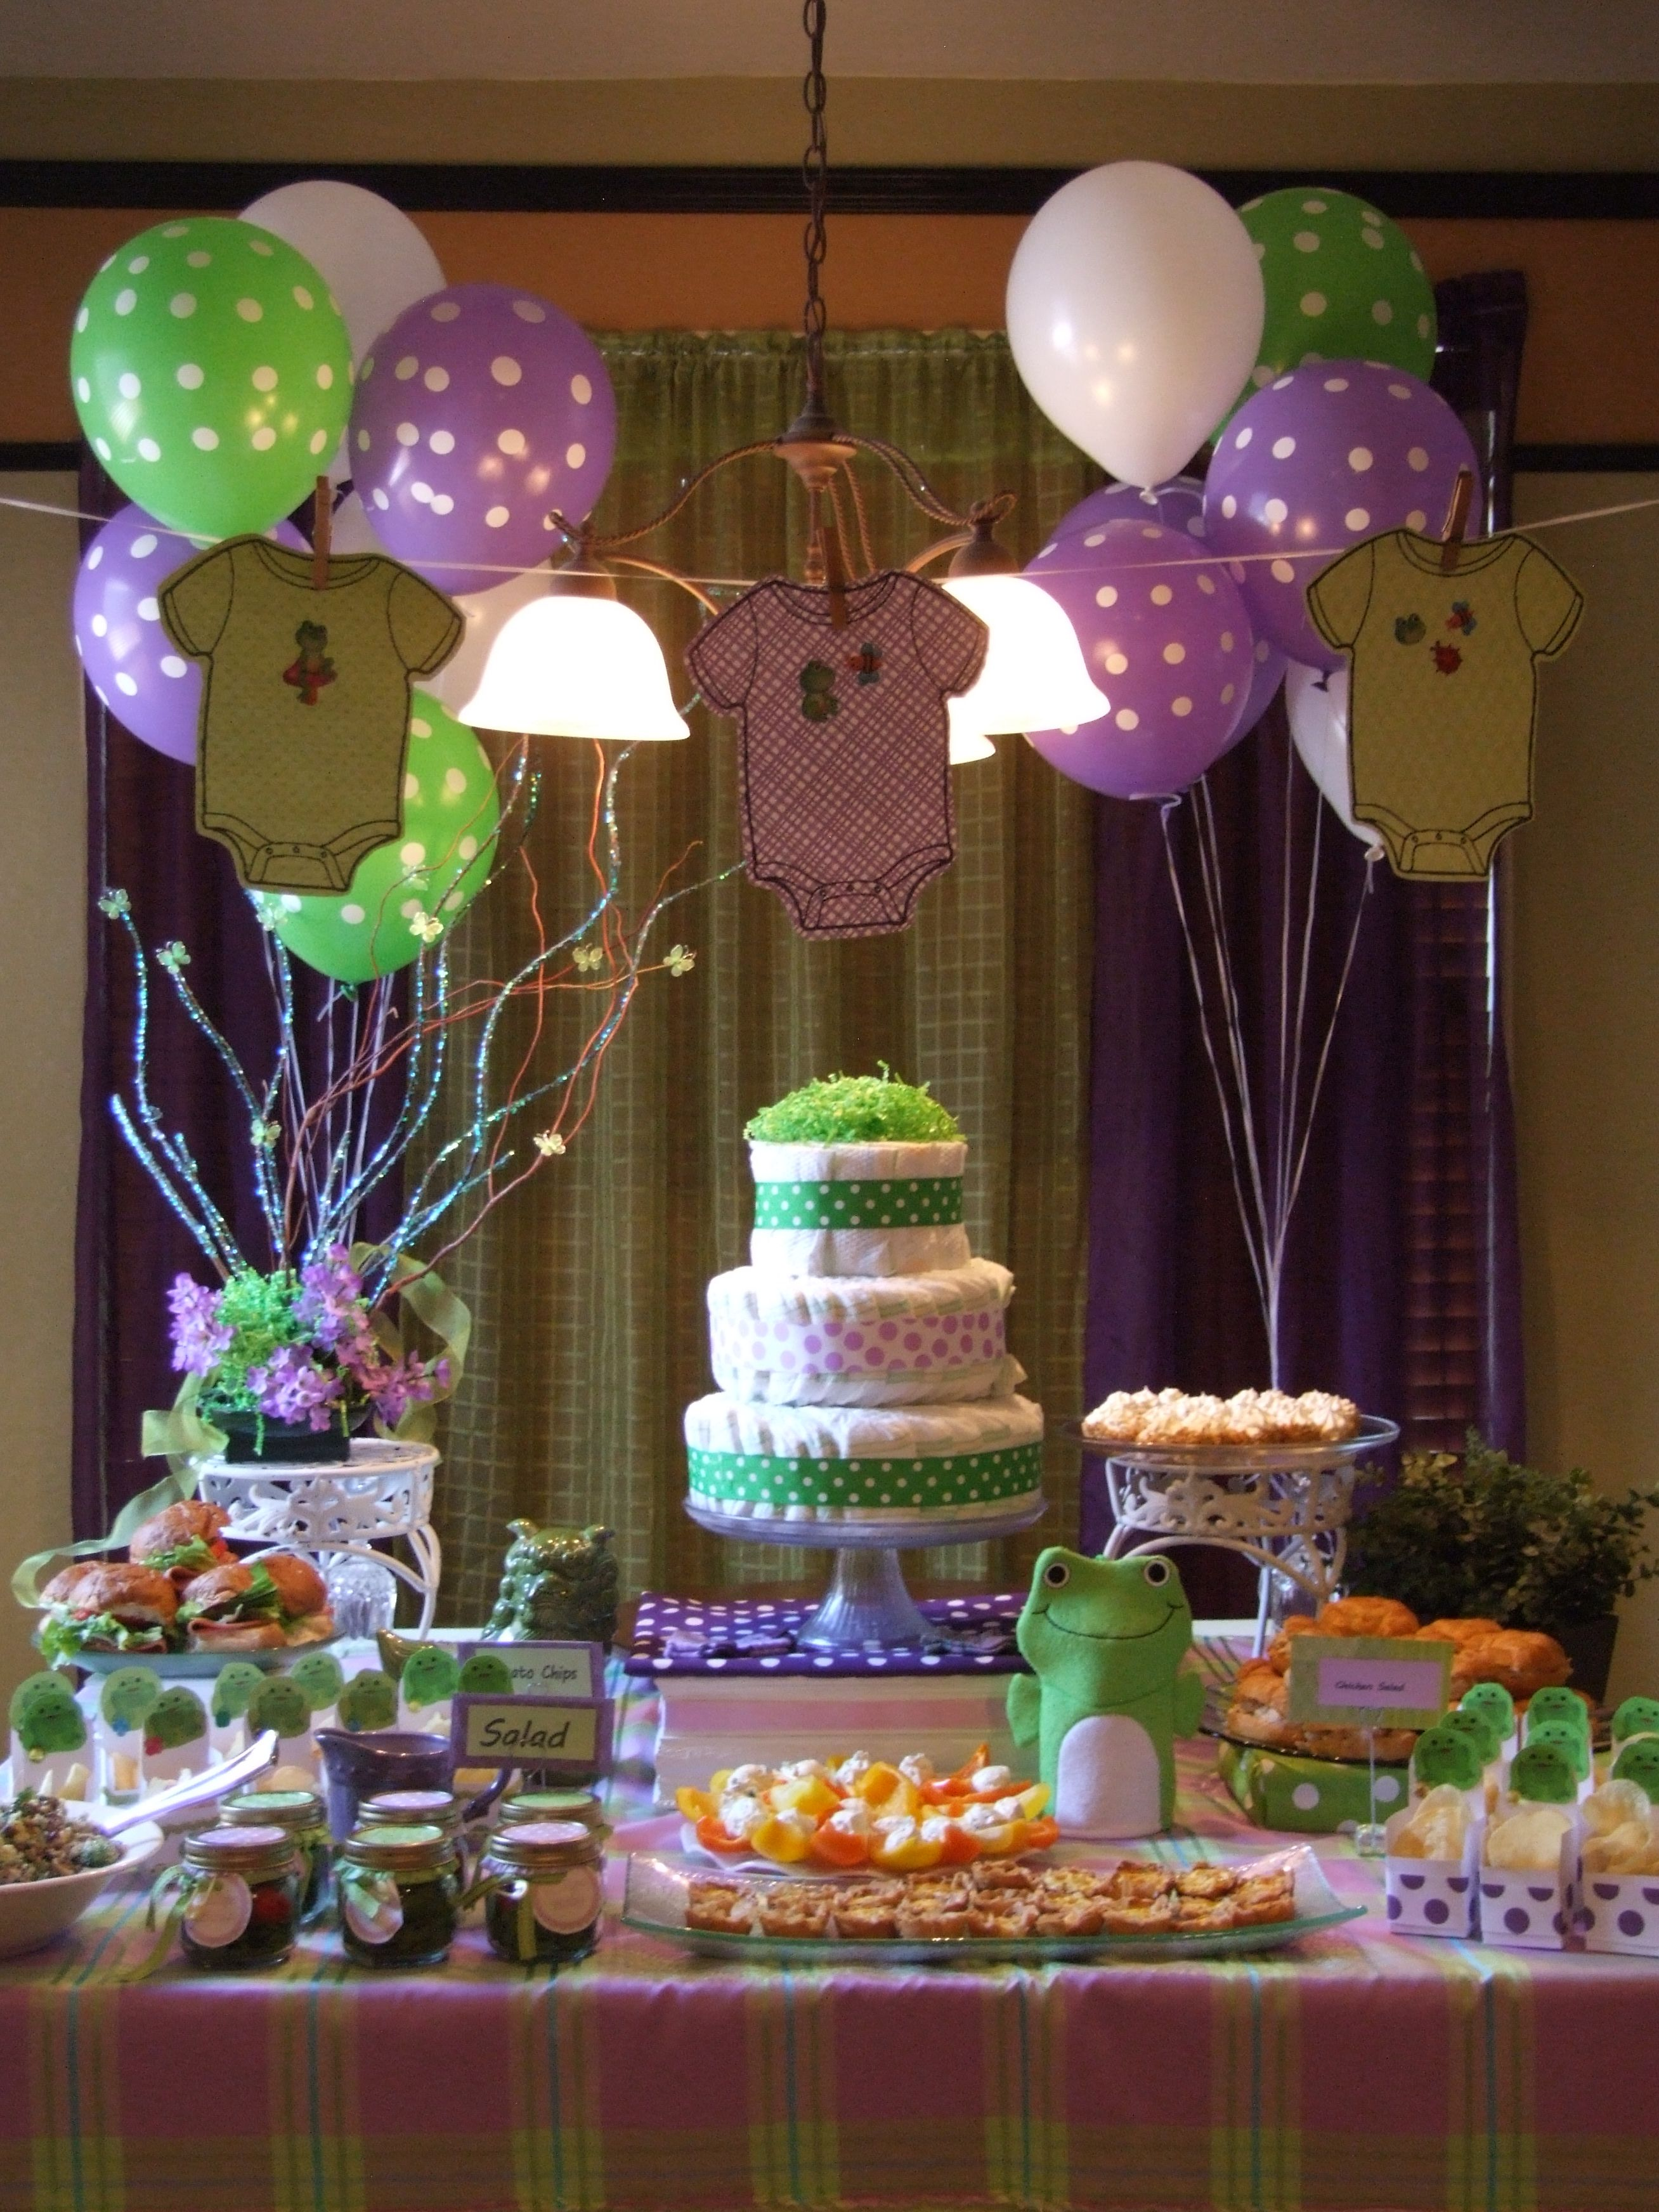 katy 39 s baby shower green and purple baby shower ideas pinterest